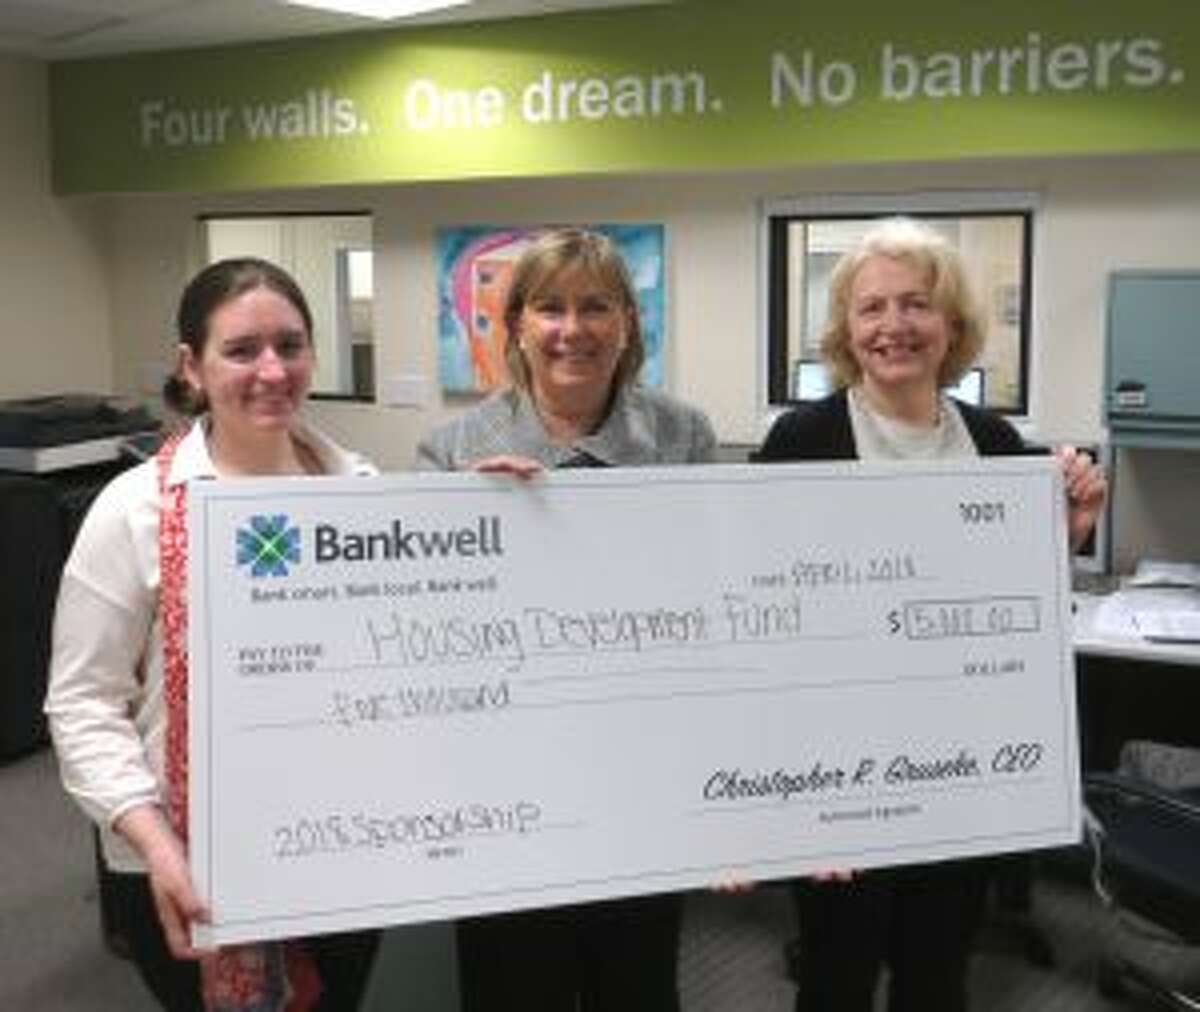 Bankwell, which has two locations in New Canaan recently gave to the Housing Development Fund.